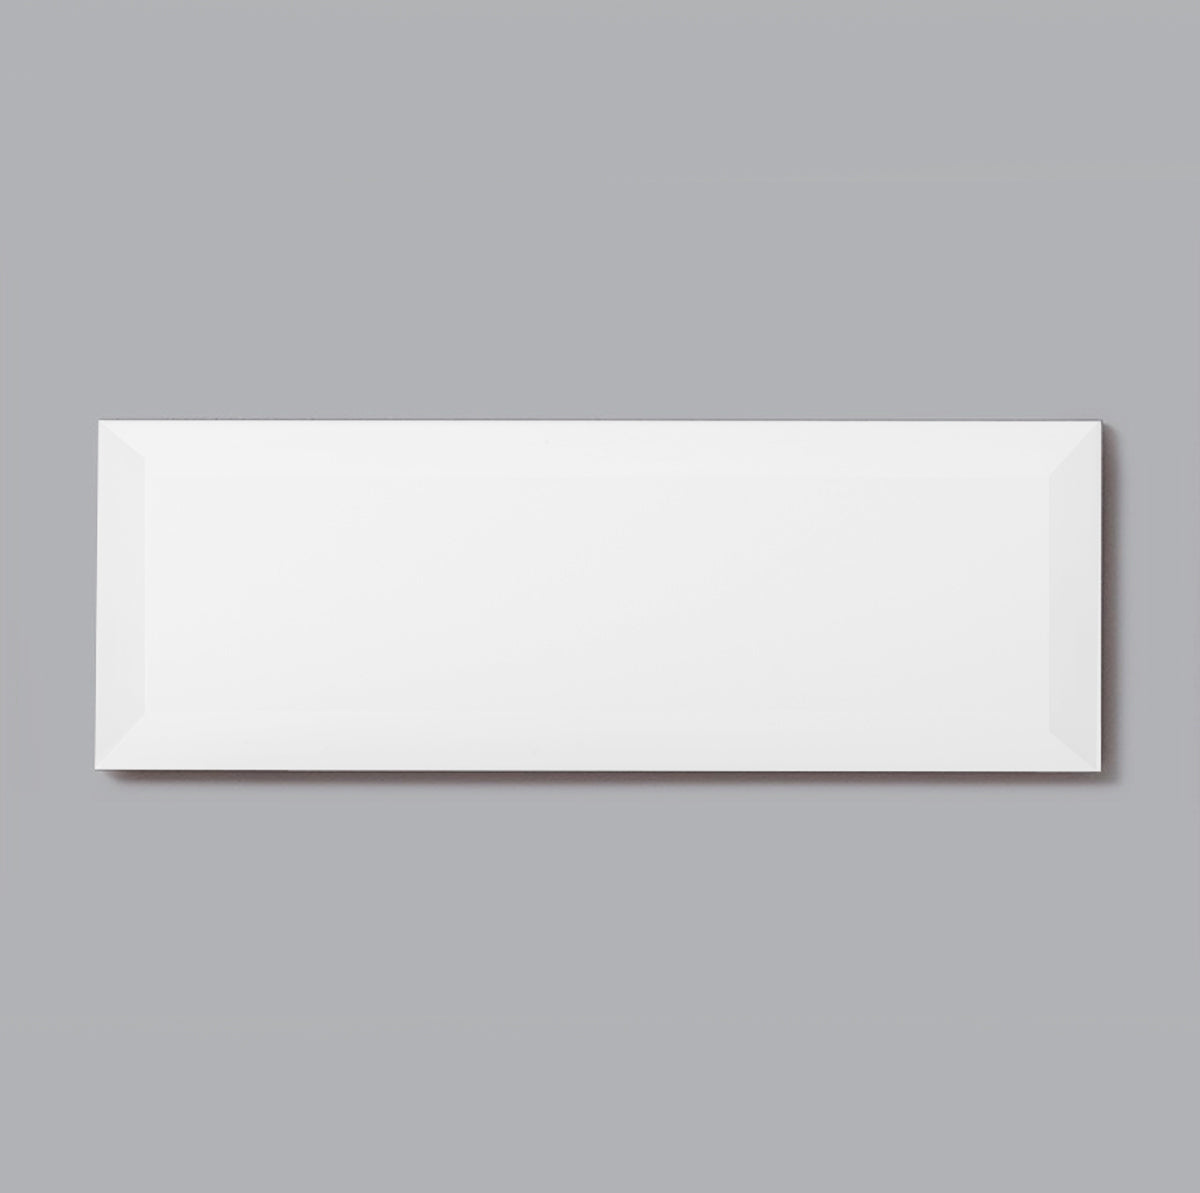 3 x 6 White Flat Polished or High Gloss Wall Tile